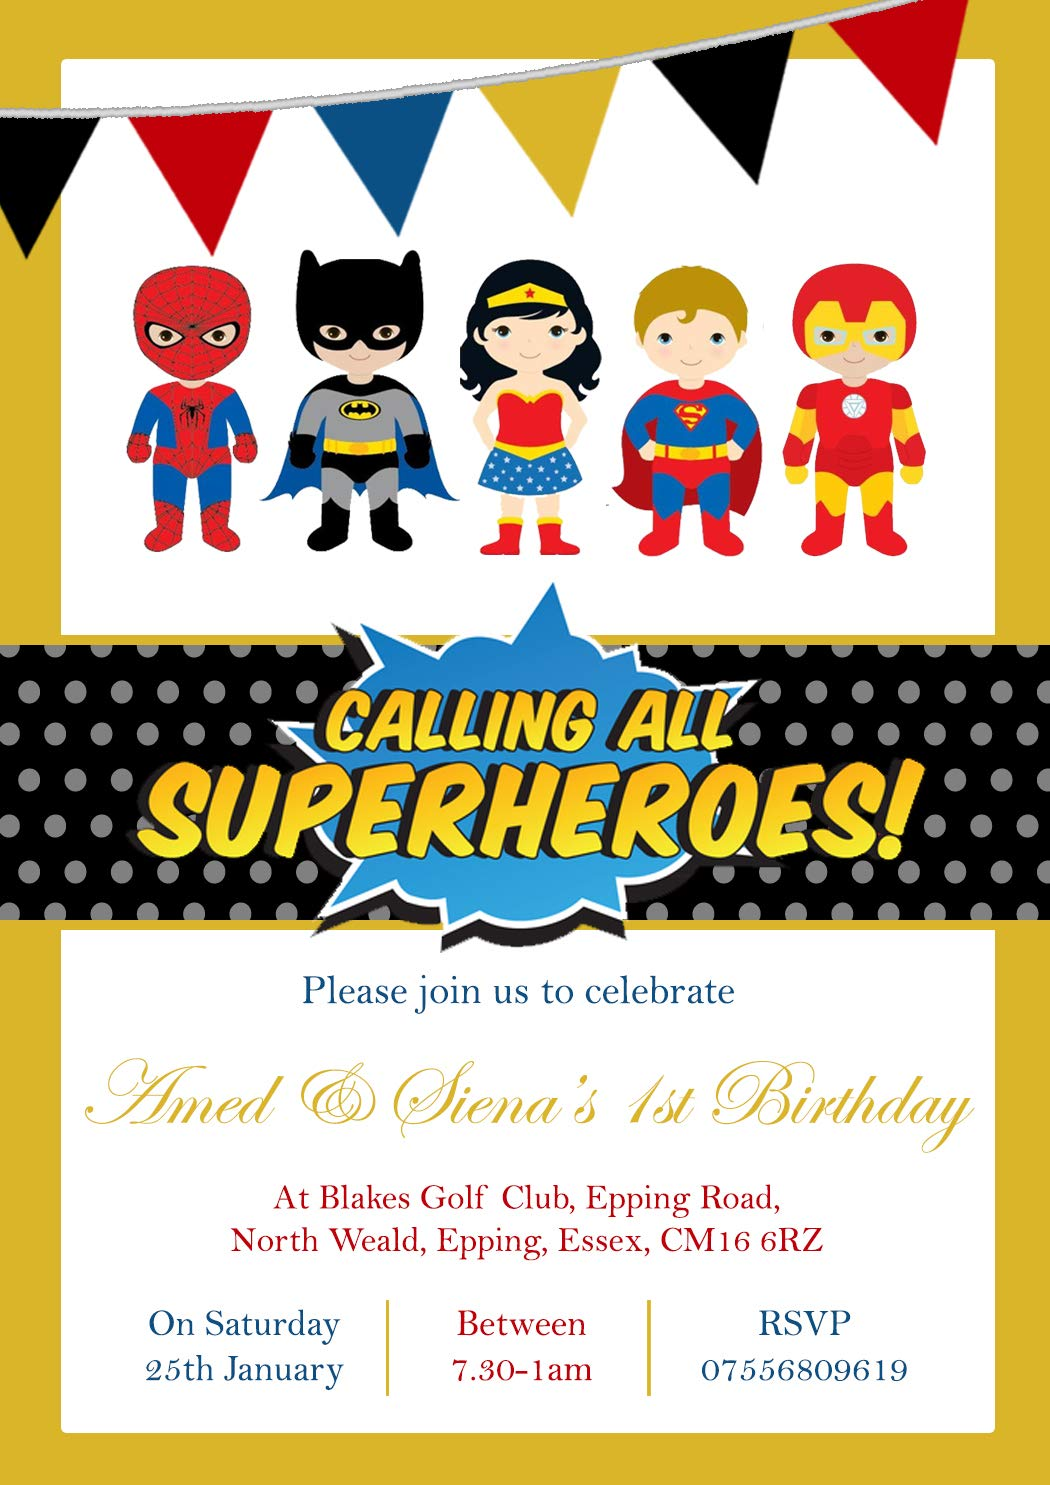 POW Personalised Calling All Superheros Childrens Birthday Invitations Printed Invites Boy Girl Joint Party Twins Unisex